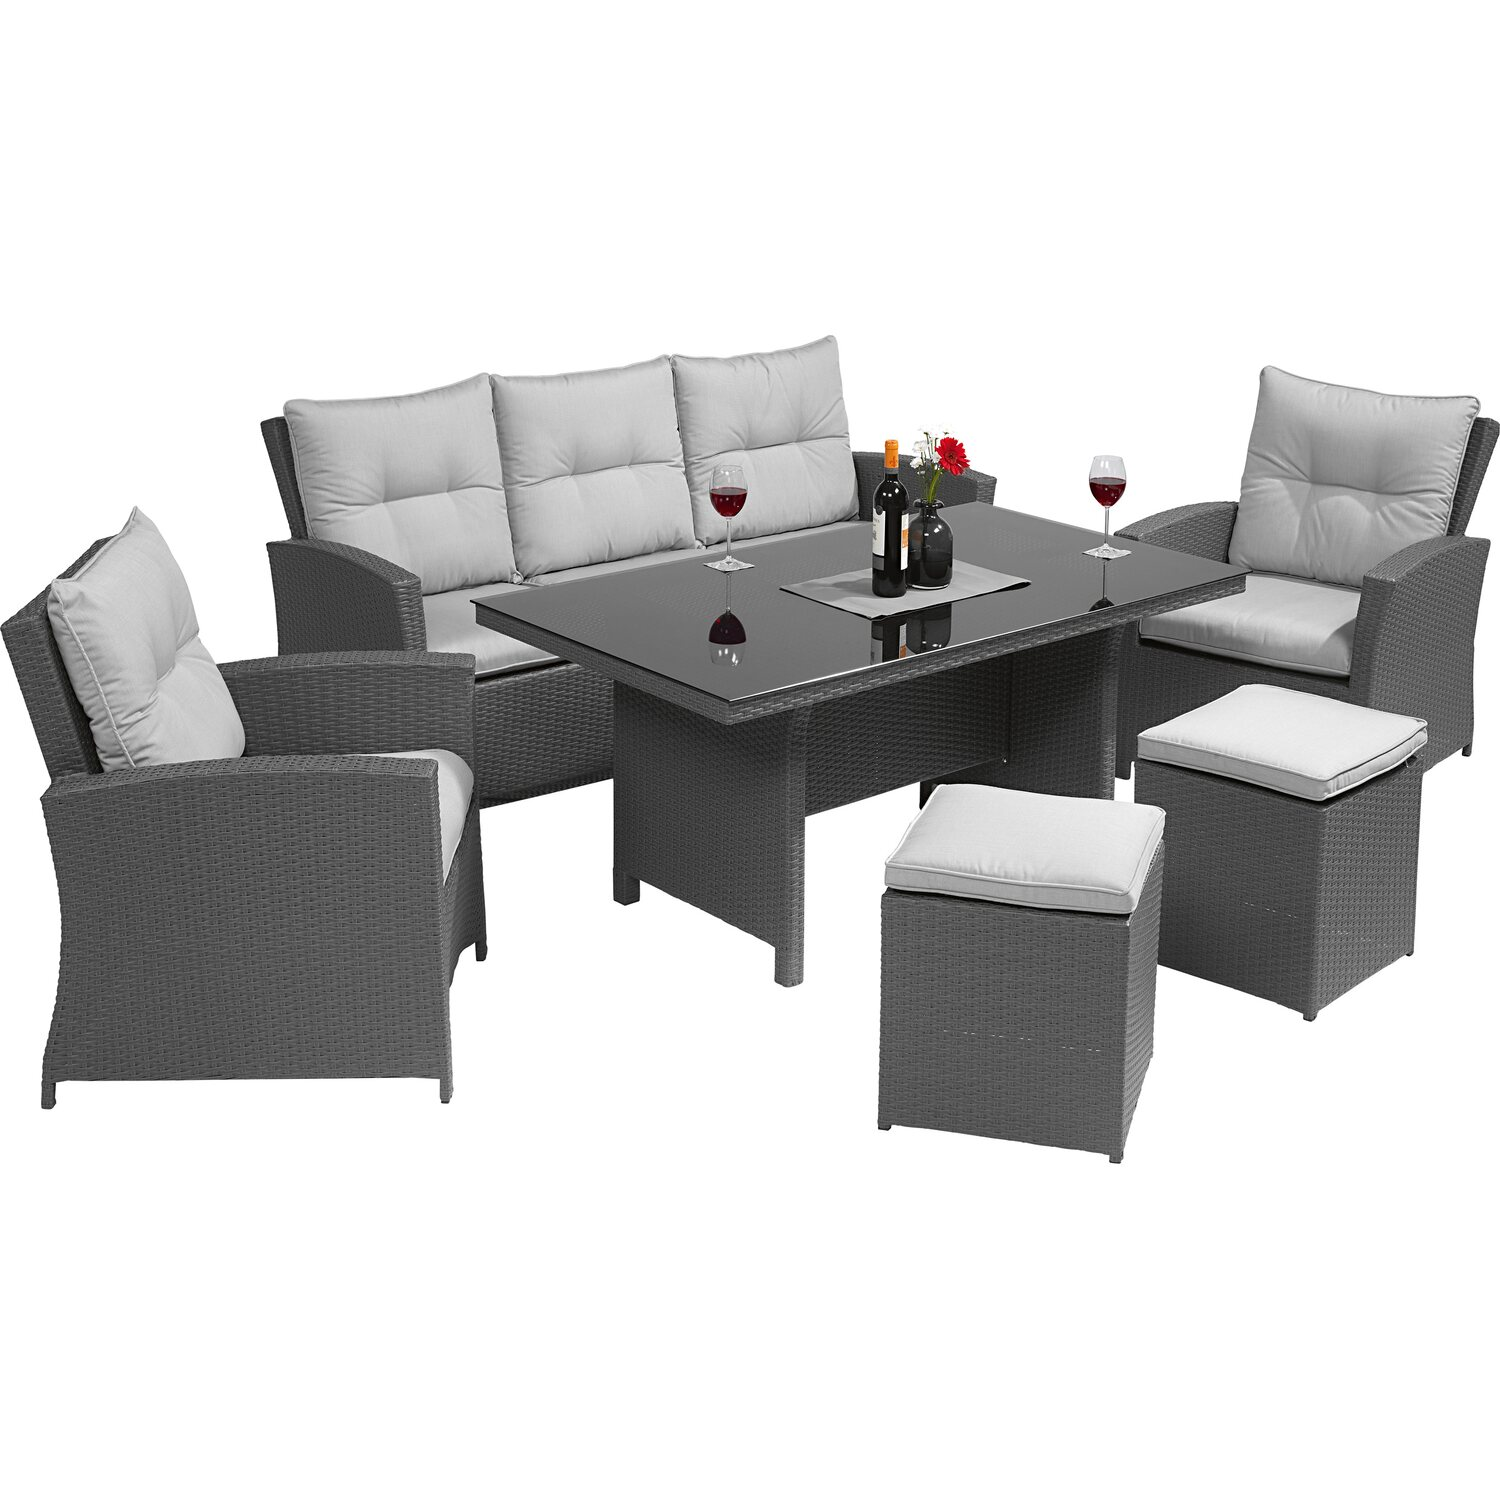 obi esstisch lounge gruppe vermont deep water concrete polyrattan 6 tlg kaufen bei obi. Black Bedroom Furniture Sets. Home Design Ideas